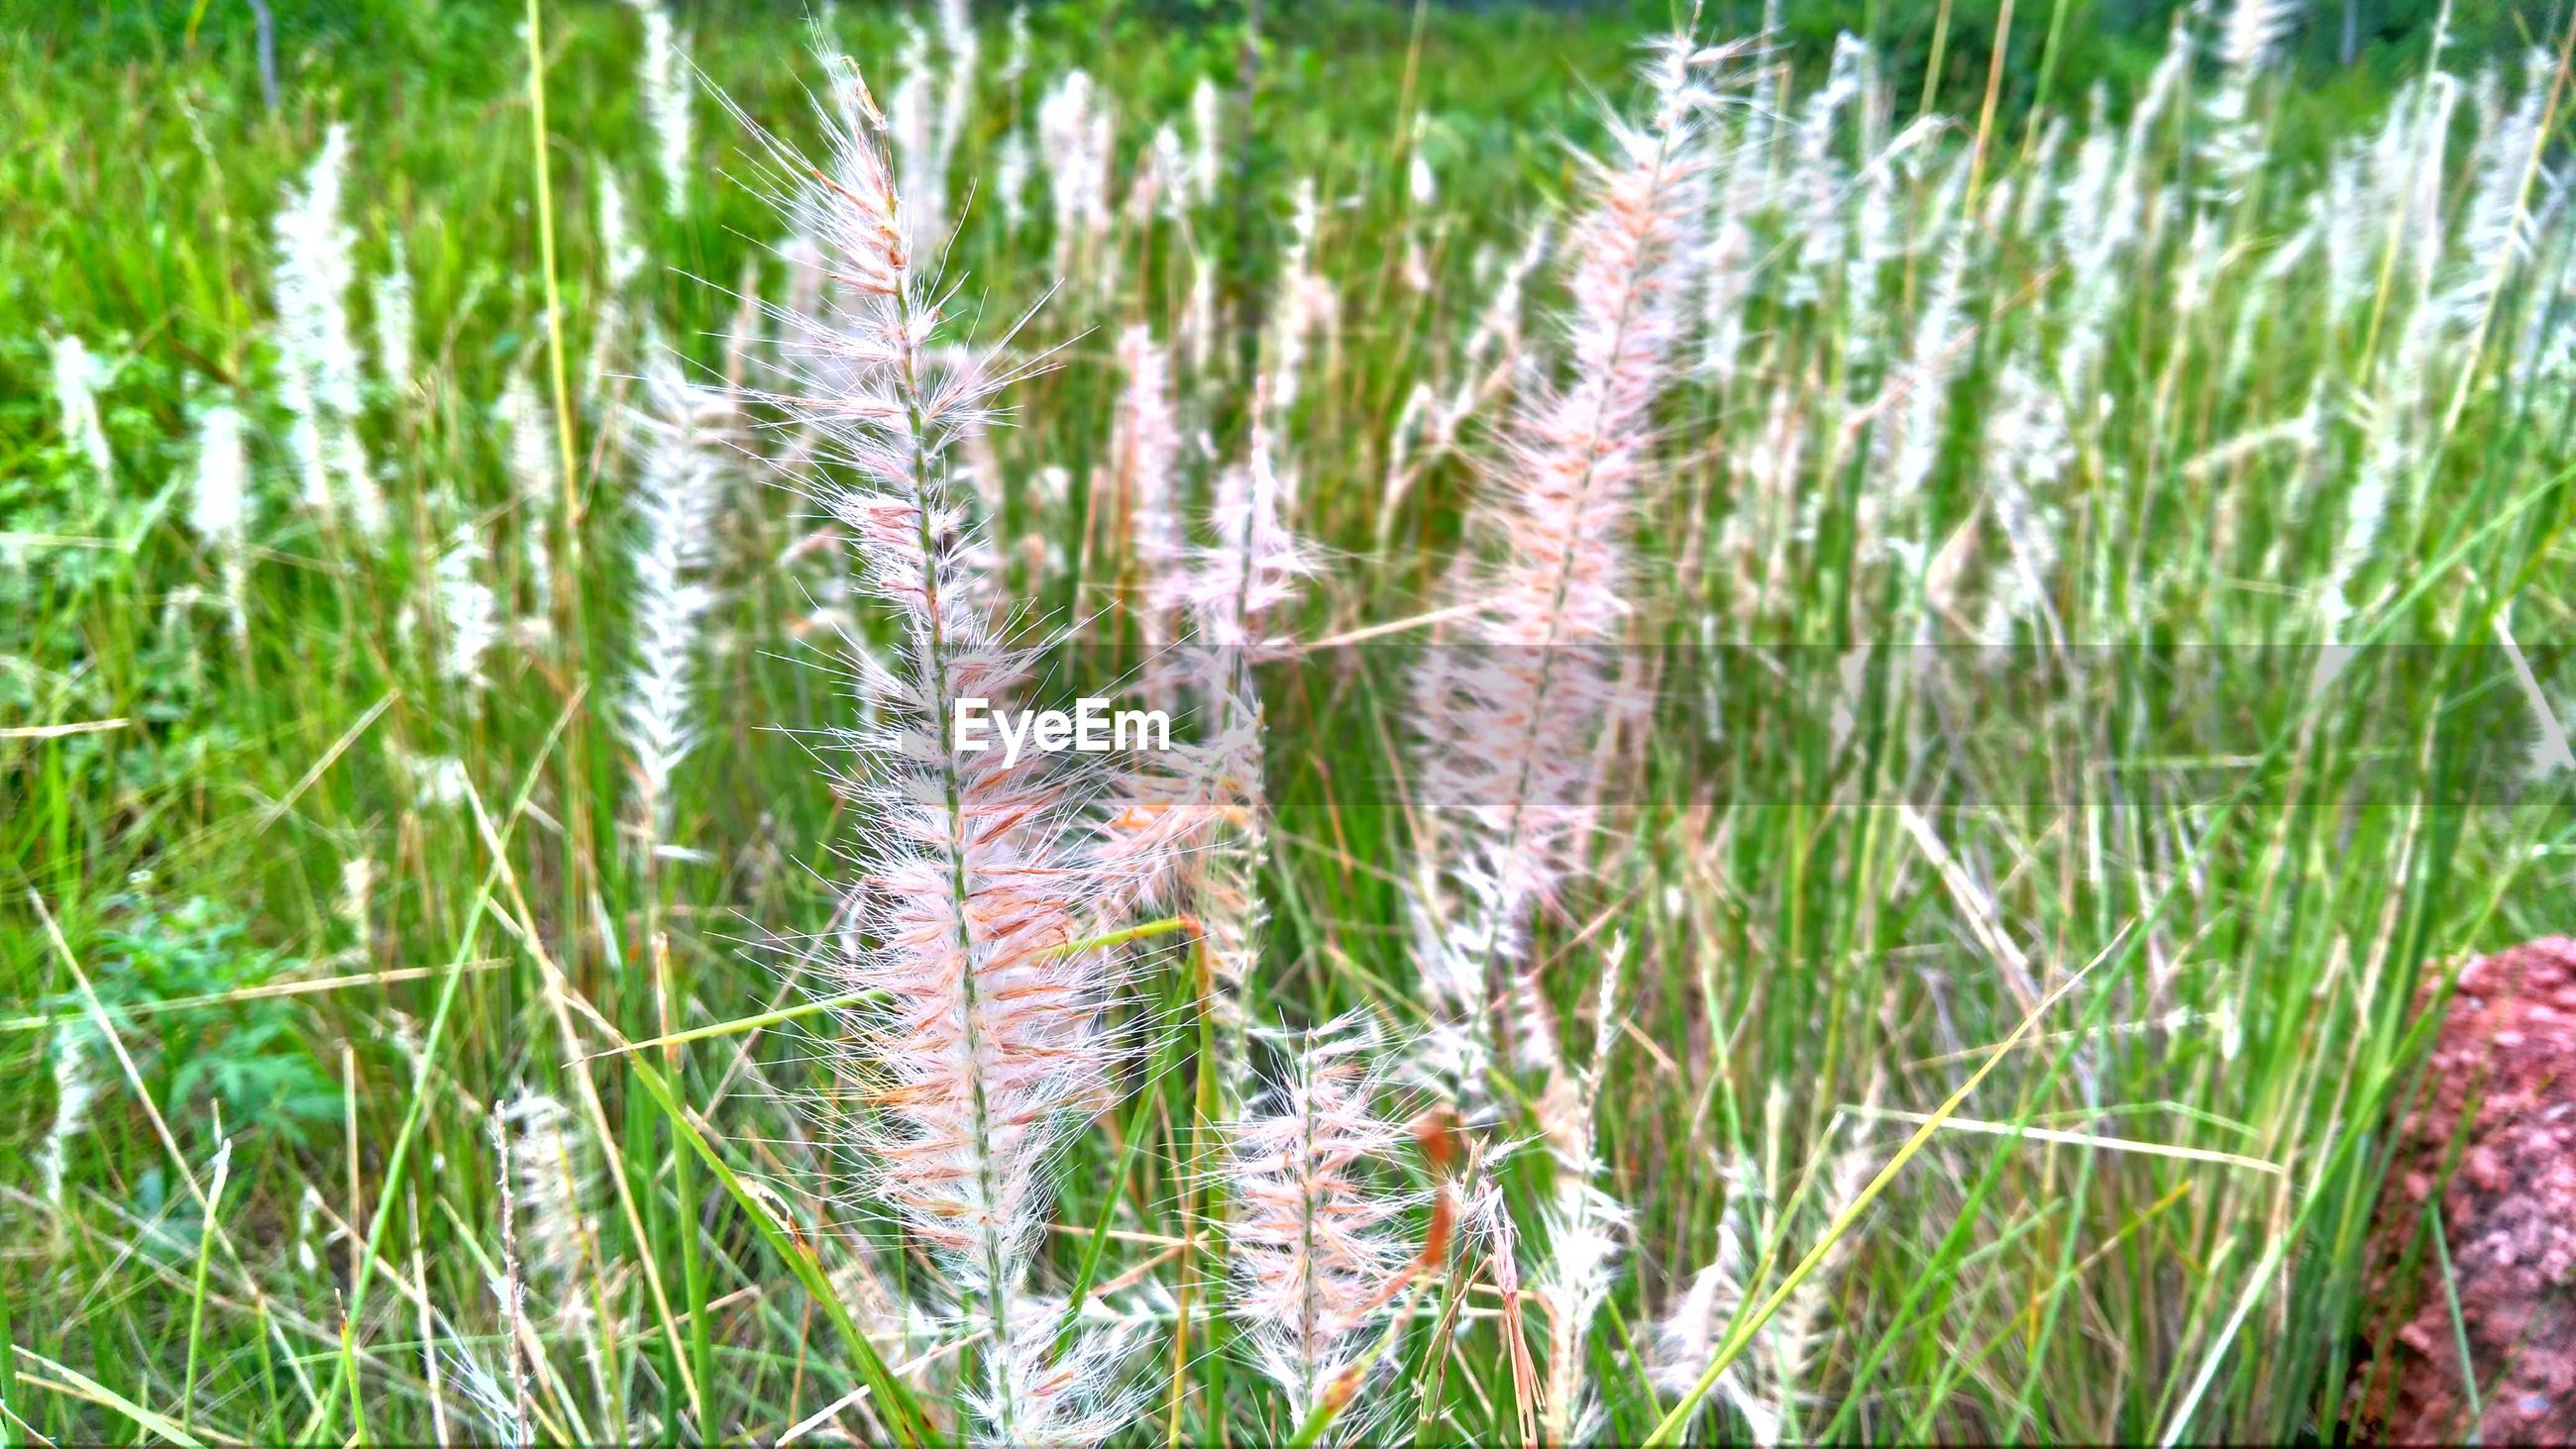 plant, growth, green color, nature, grass, no people, beauty in nature, close-up, day, land, tranquility, field, outdoors, agriculture, cereal plant, focus on foreground, backgrounds, animal, rural scene, animal themes, blade of grass